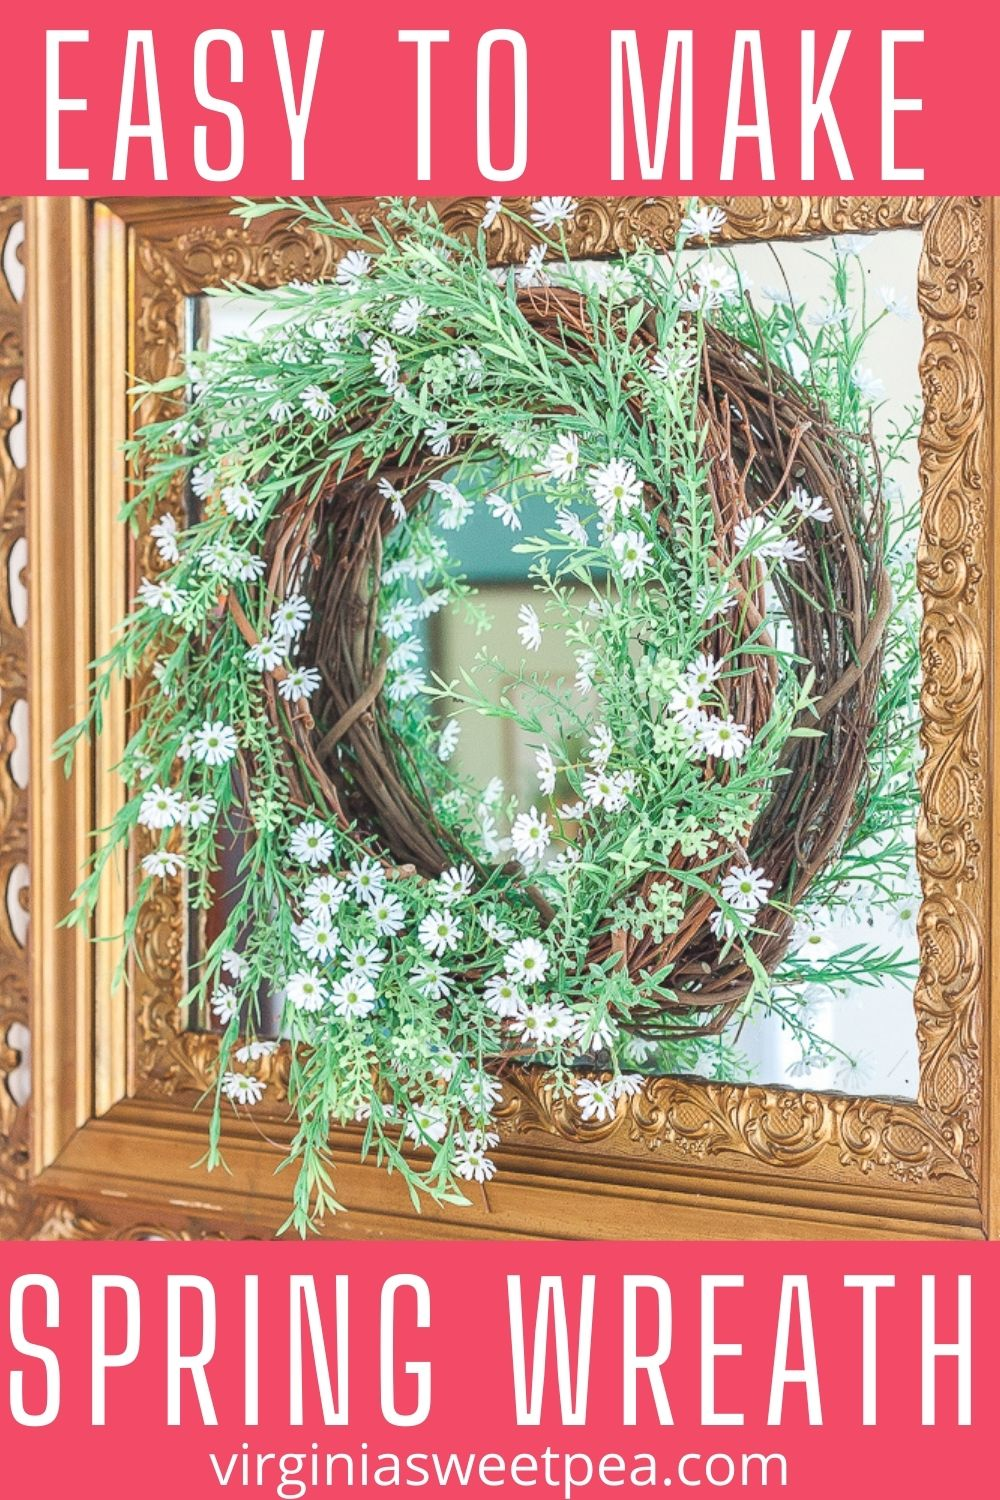 Follow this step-by-step tutorial to learn how to make a spring wreath to use to decorate your home for spring.  It looks great hanging on a door, mirror, or over a mantel for spring. via @spaula